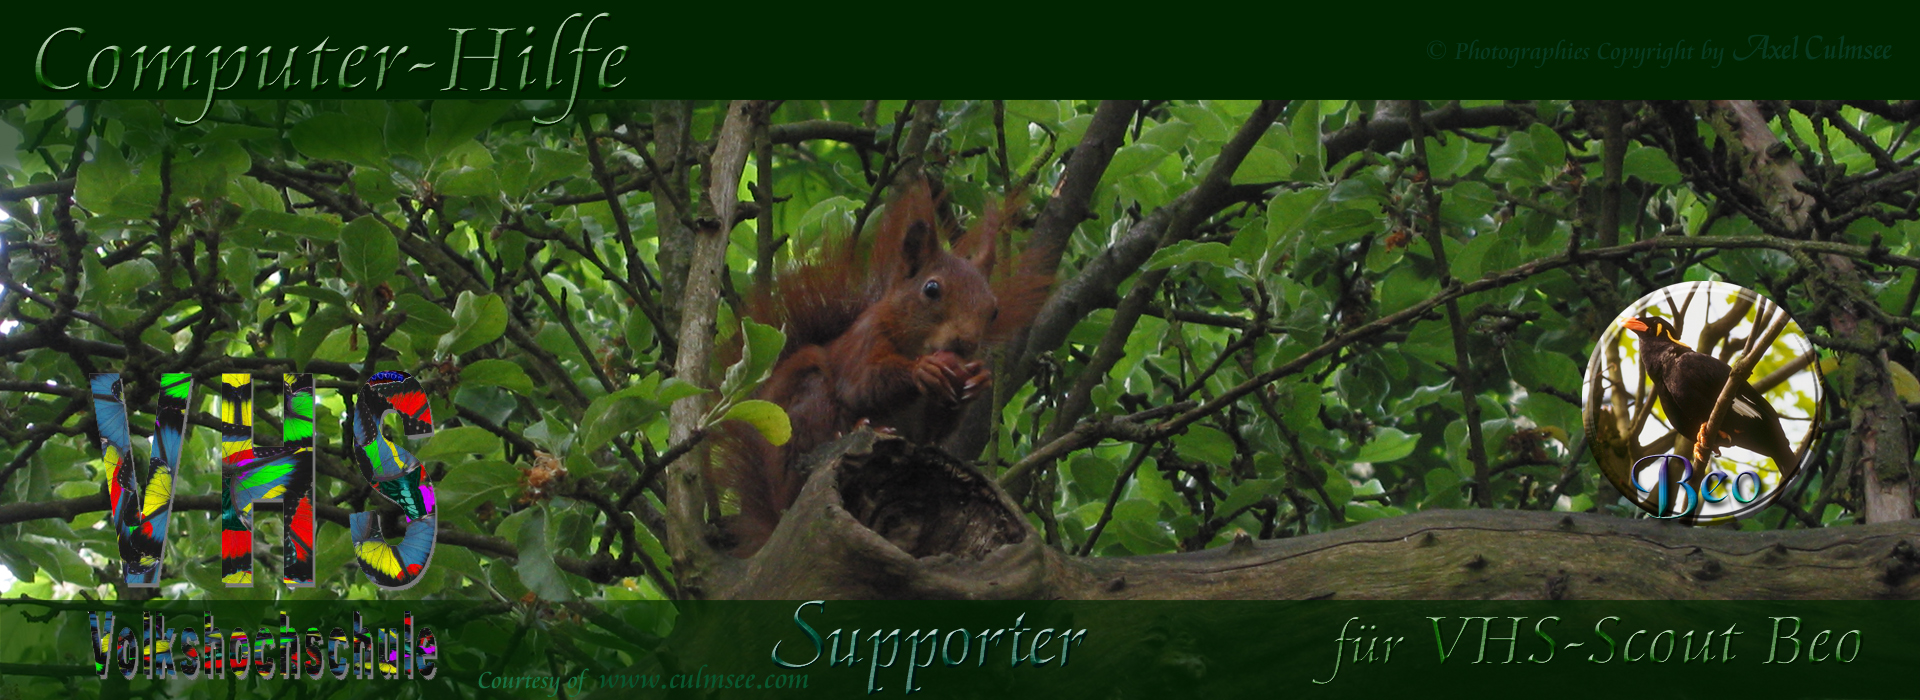 Supporter squirrel for Scout Beo